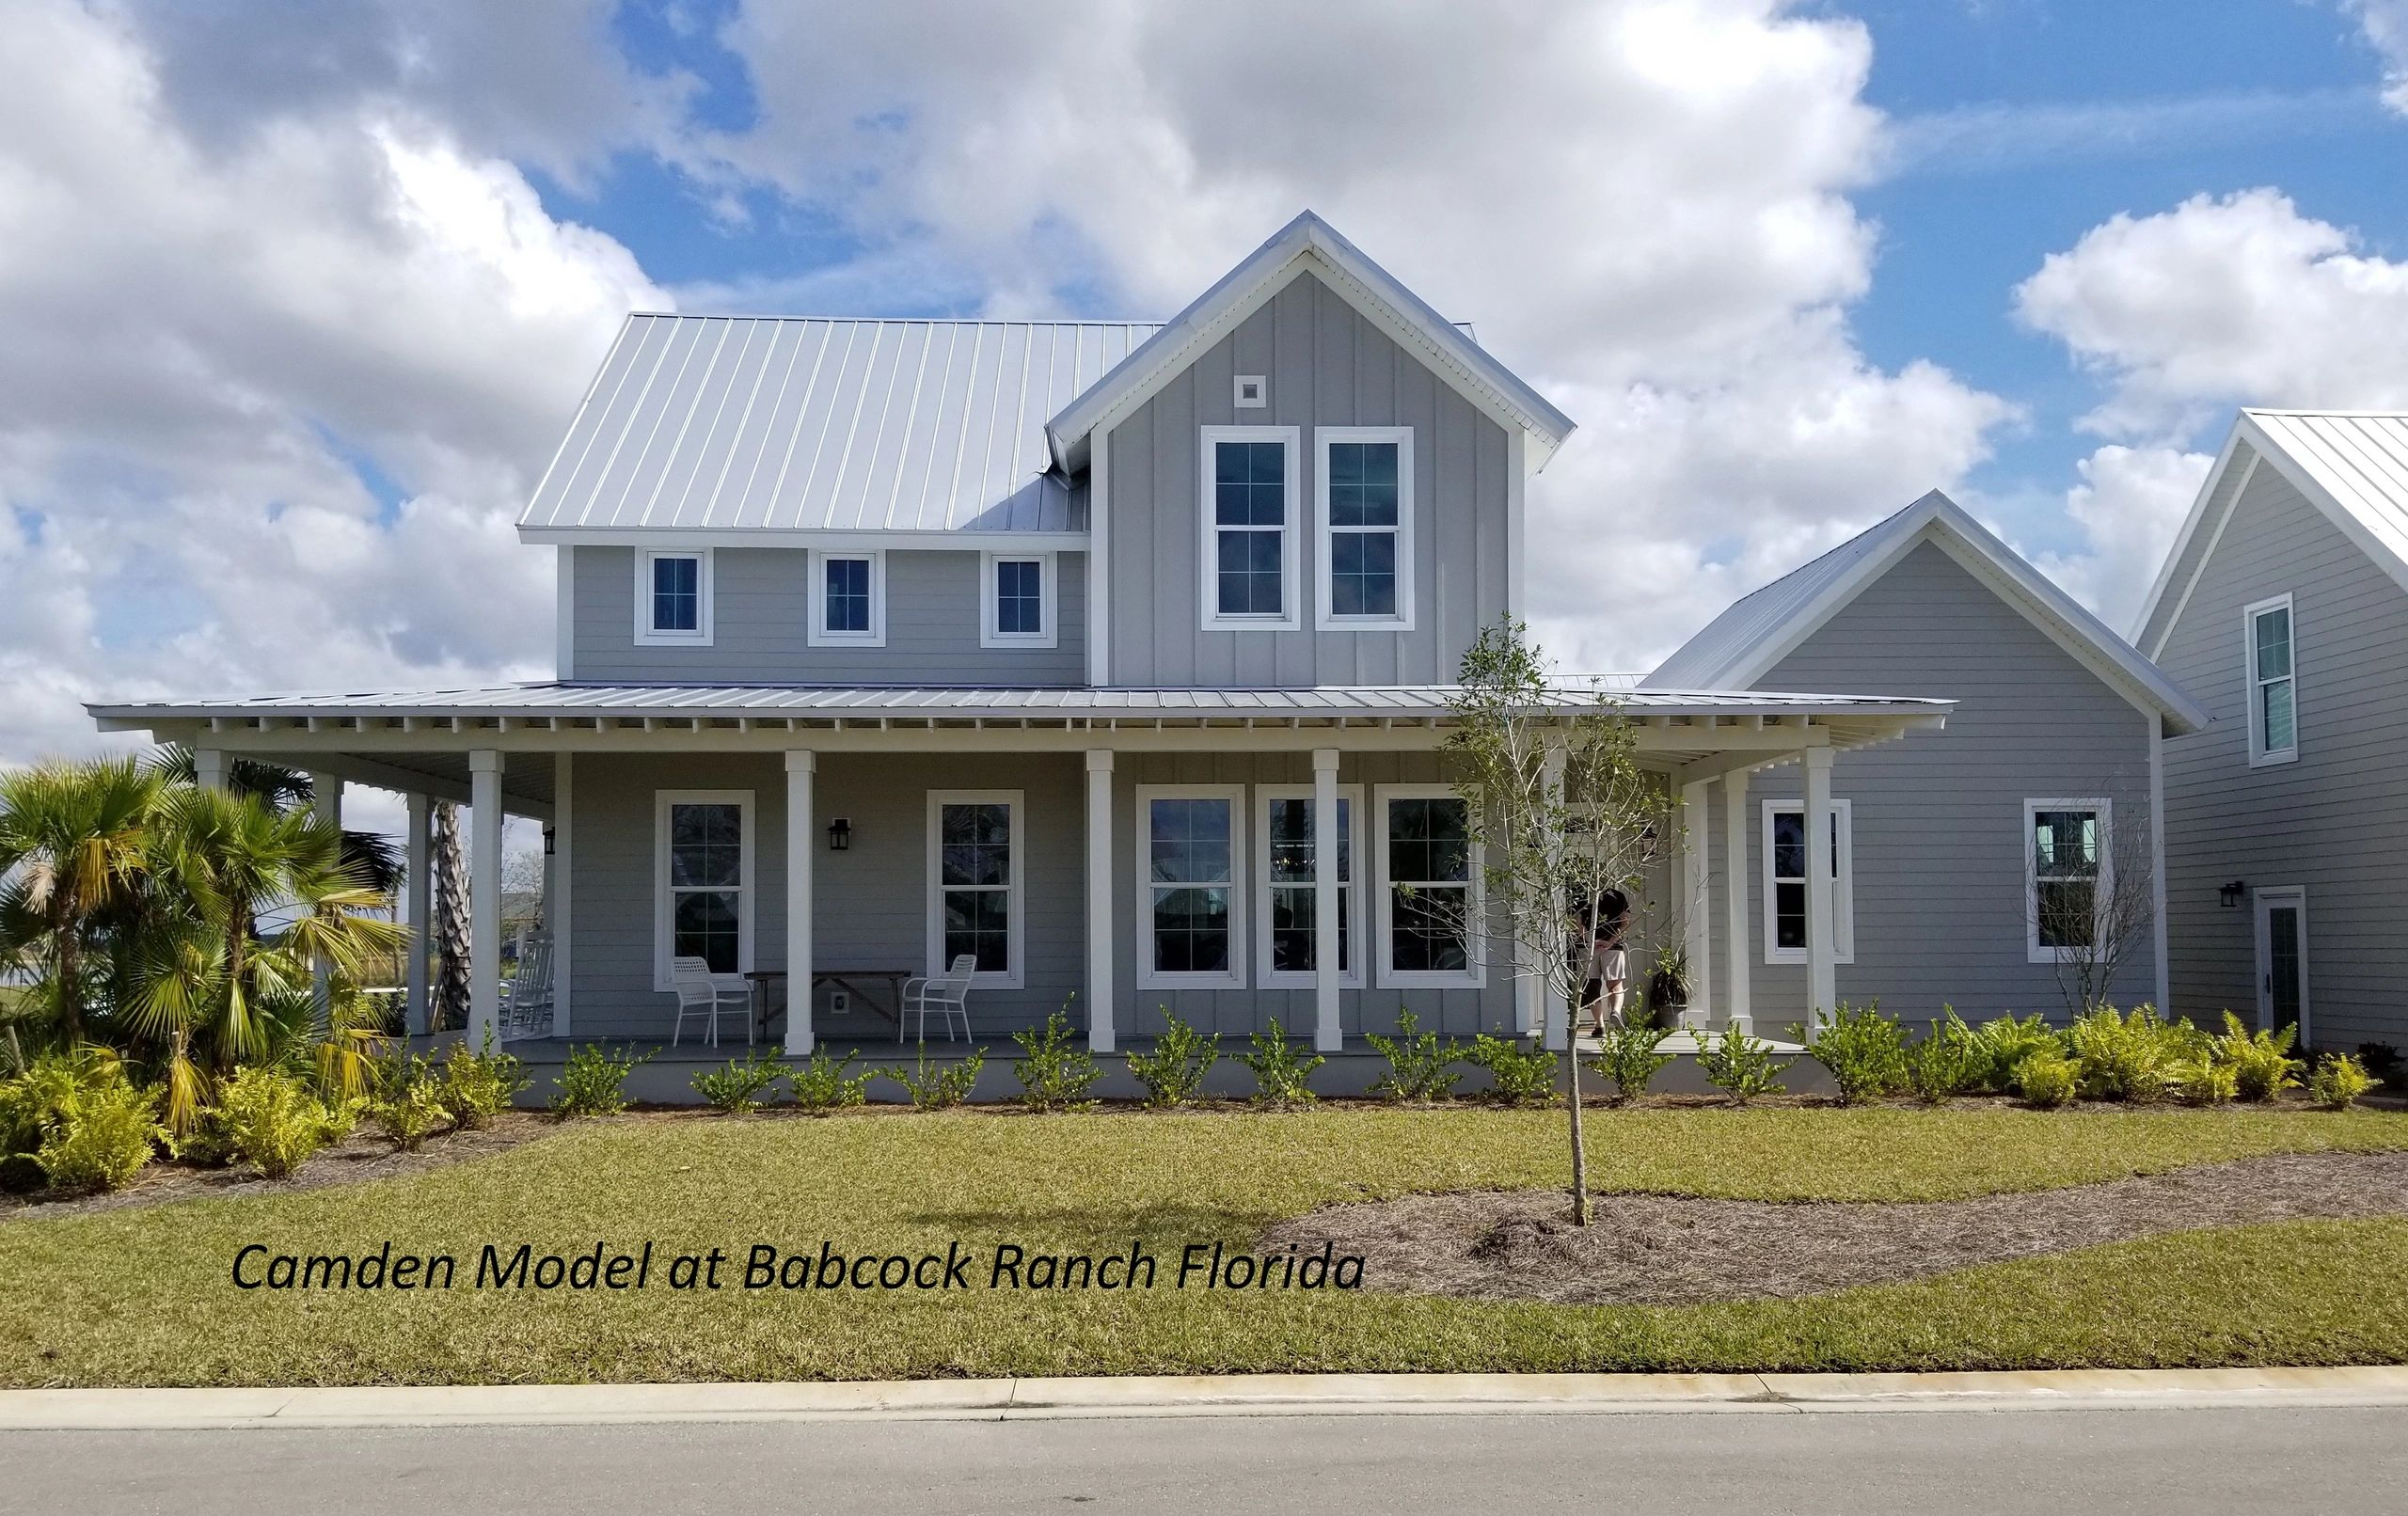 New Panel Homes in Englewood, Florida on modern duplex house designs, duplex townhouse designs, barn home designs, 7 bedroom home designs, three story home designs, duplex floor designs, duplex house interior designs, duplex house elevation designs, enchanted home designs, manufactured home indoor designs, single story duplex designs, split ranch home designs, split level home designs, 6 bedroom home designs, 4-bedroom bungalow architectural designs, duplex exterior designs, 1.5 story home designs, modular home designs, 2 bedroom 2 bath home designs, 4-plex home designs,